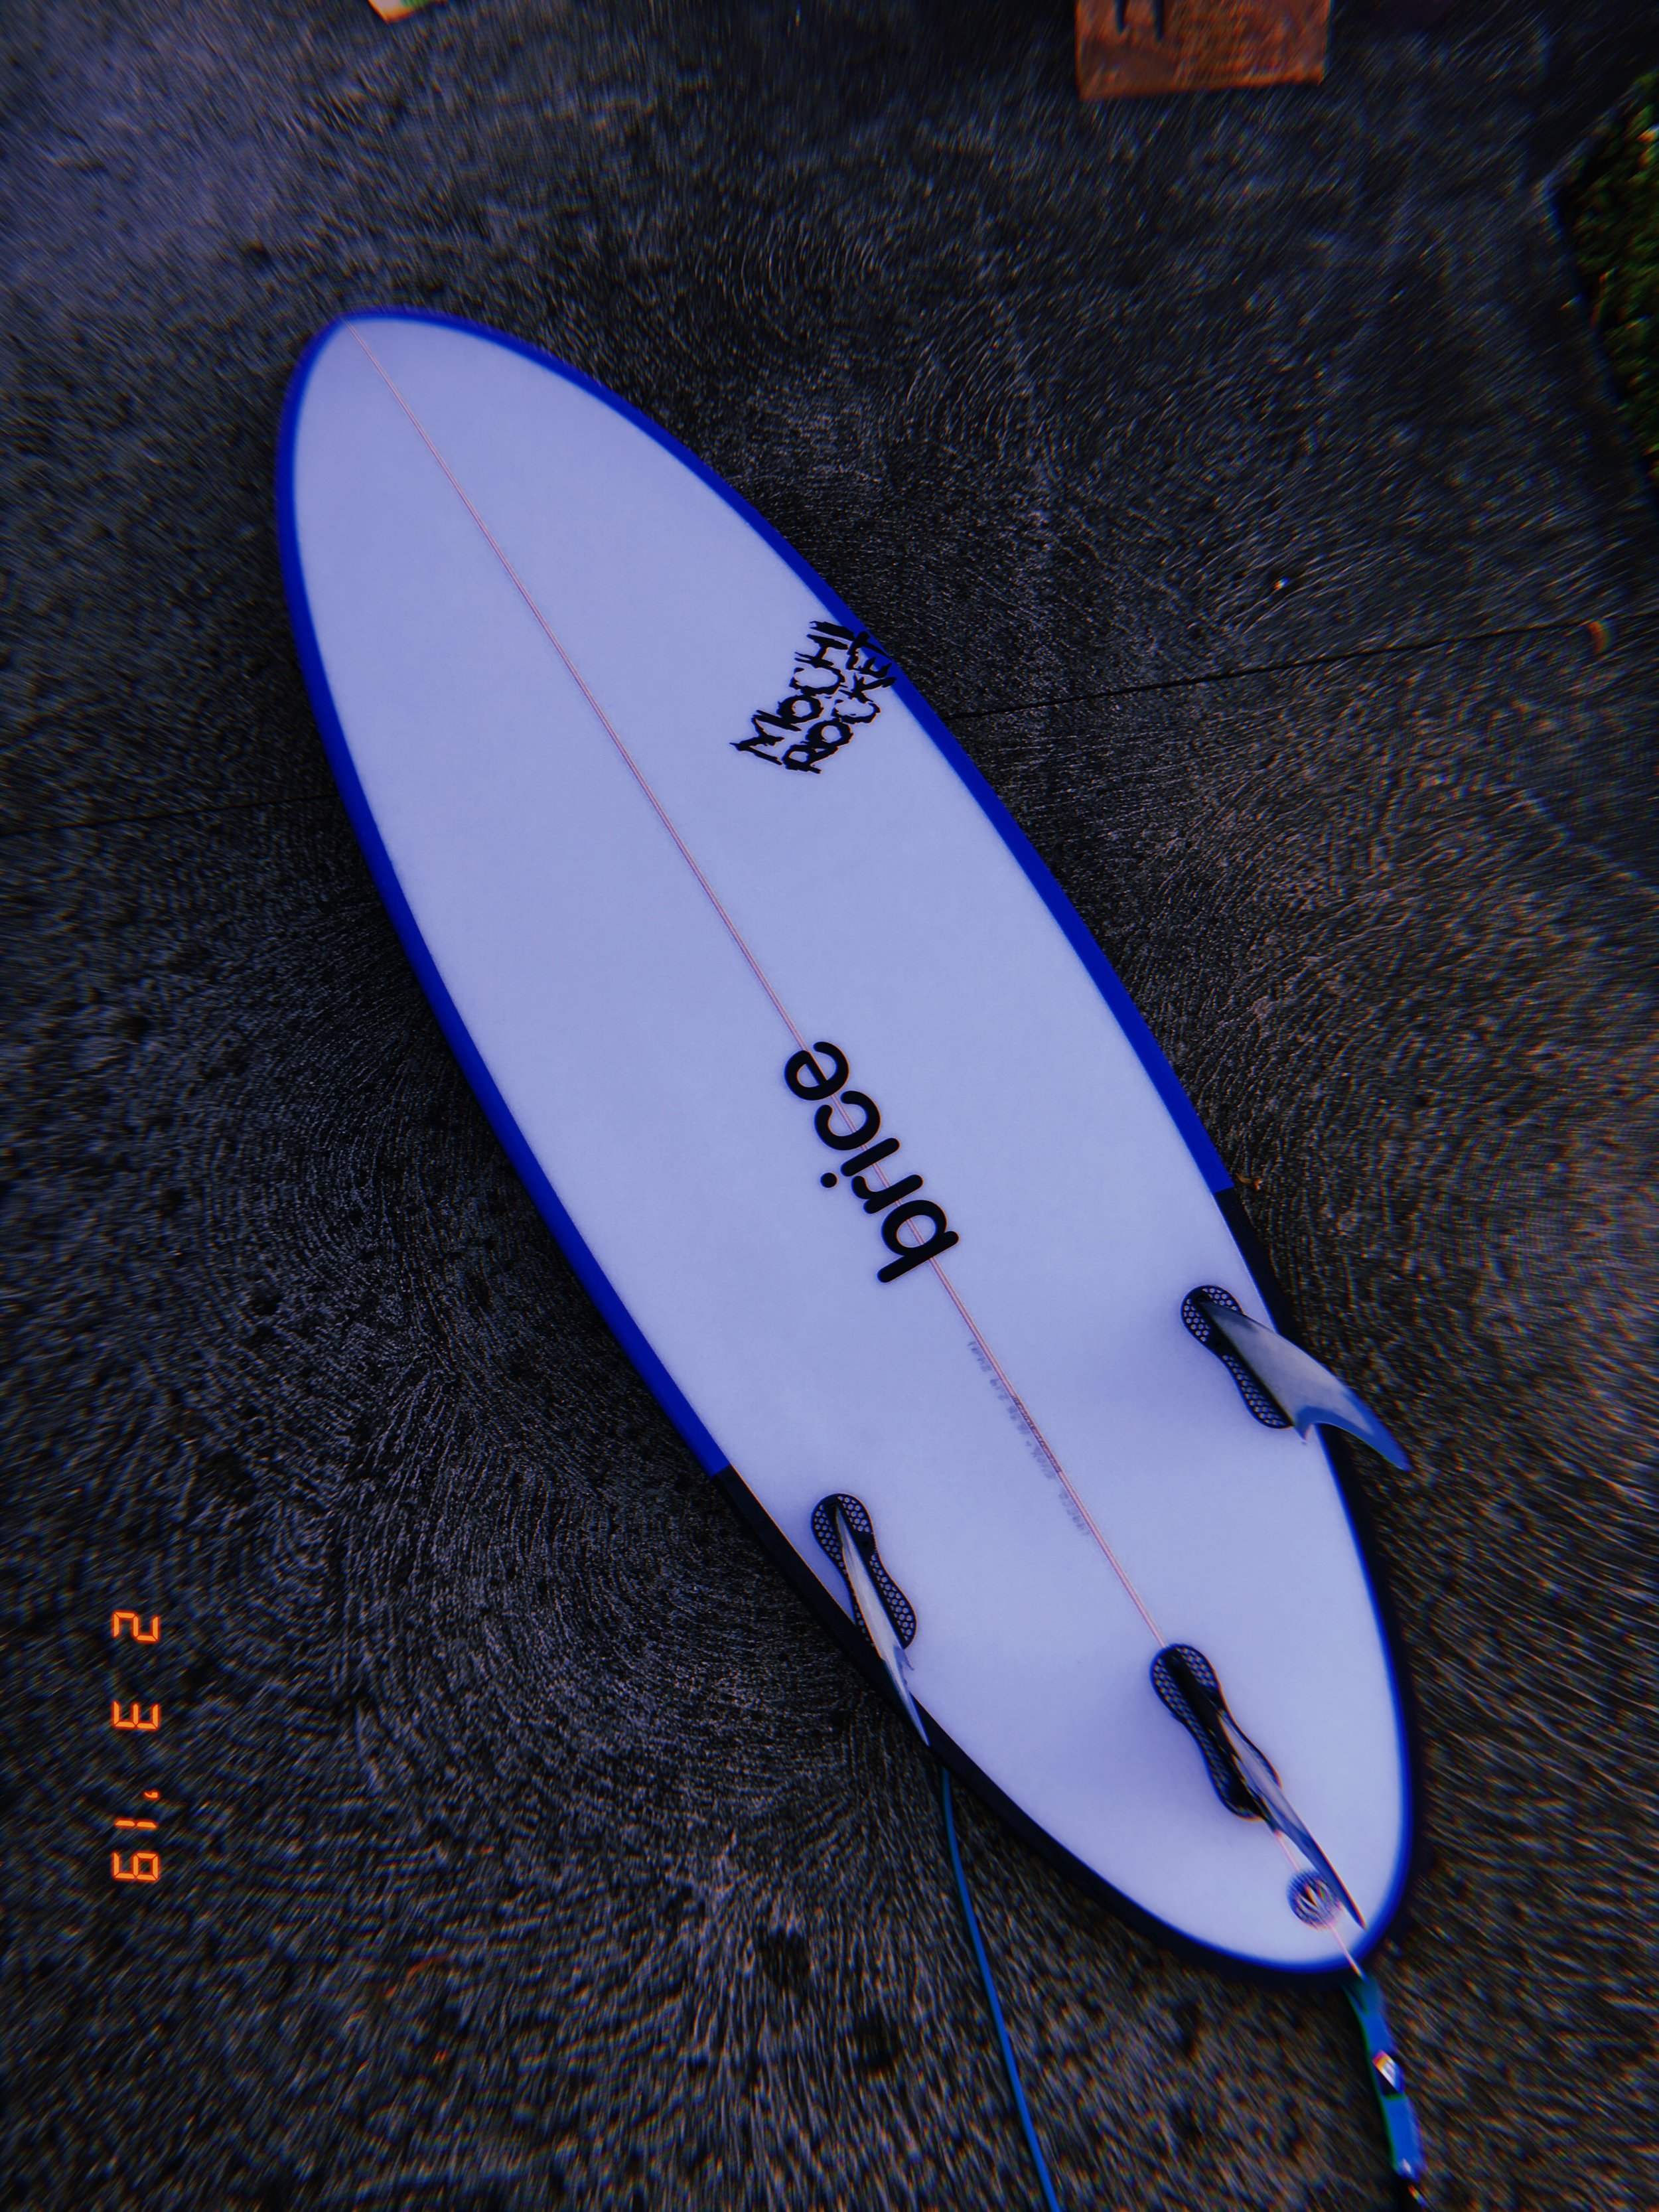 This board was a surprise on performance. Thought it might feel to gunny and pinny. It actually went amazing in less then epic surf.   Learned a lot, and really got back to the drawing board to look on what little things made a difference.  Been learning a lot about curves, and seem to be headed in the right direction, but this board was a break through.